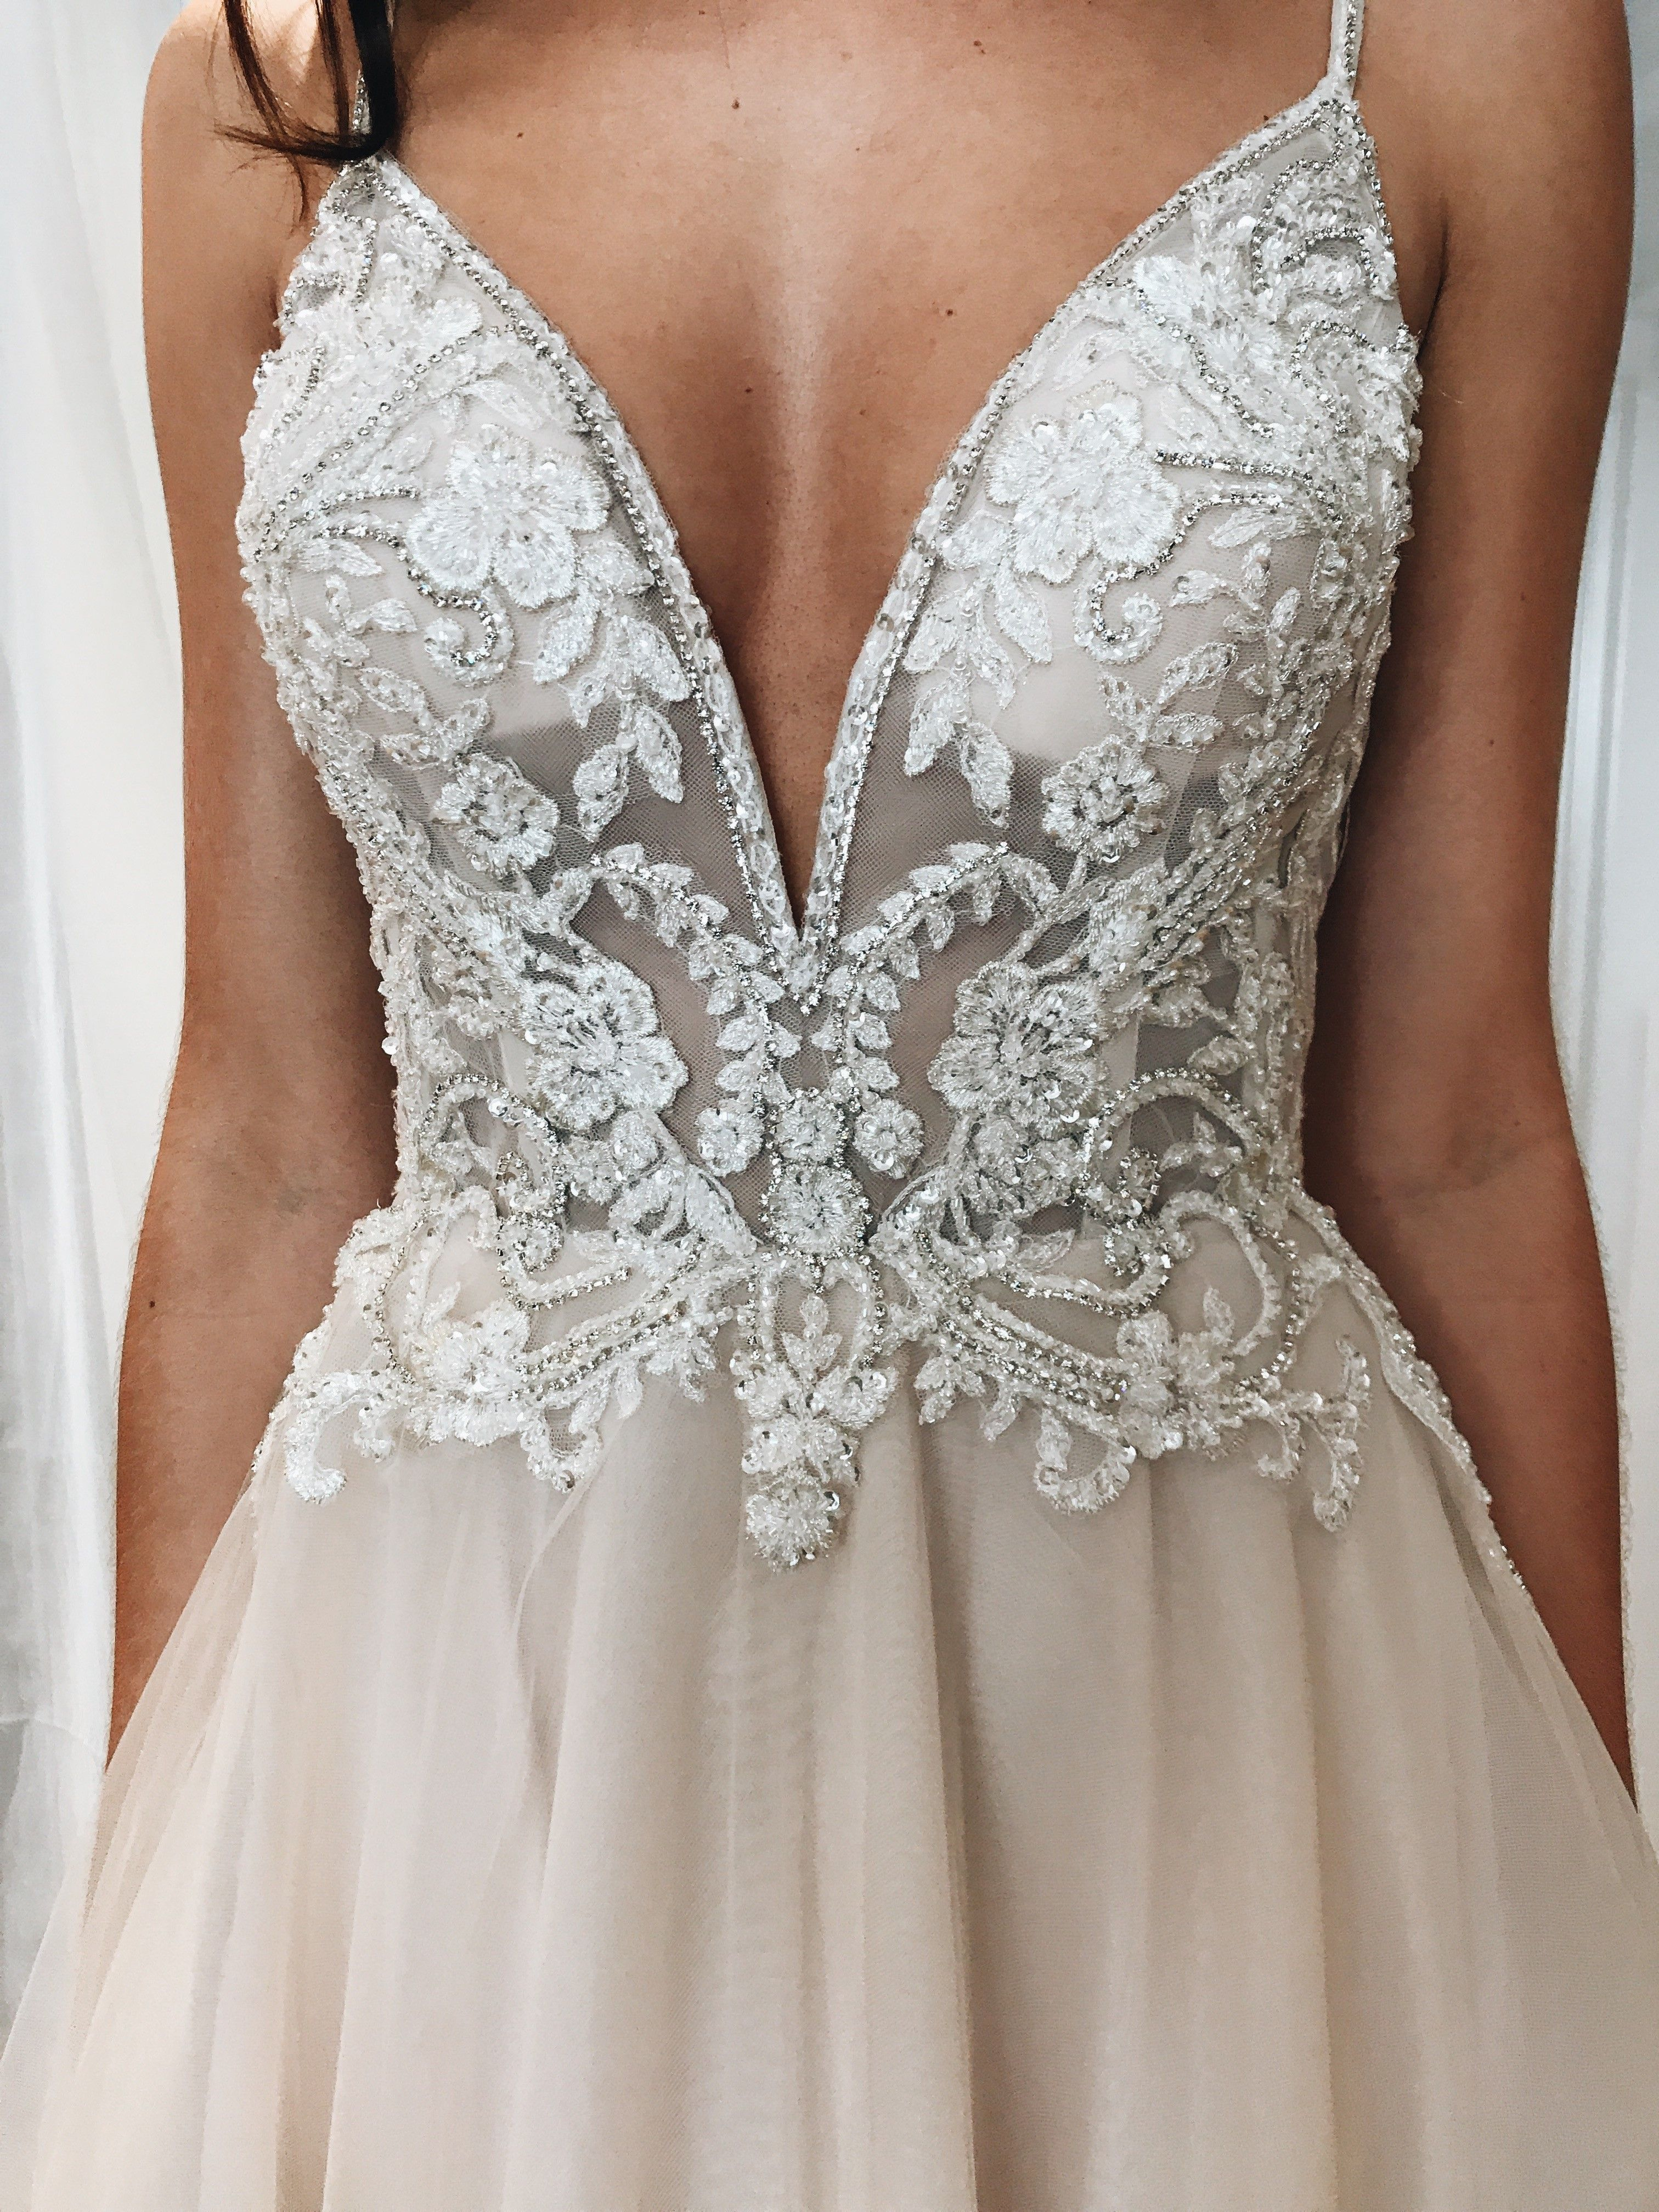 David wedding dress  Spaghetti strap plunging vneck lace and illusion wedding dress from